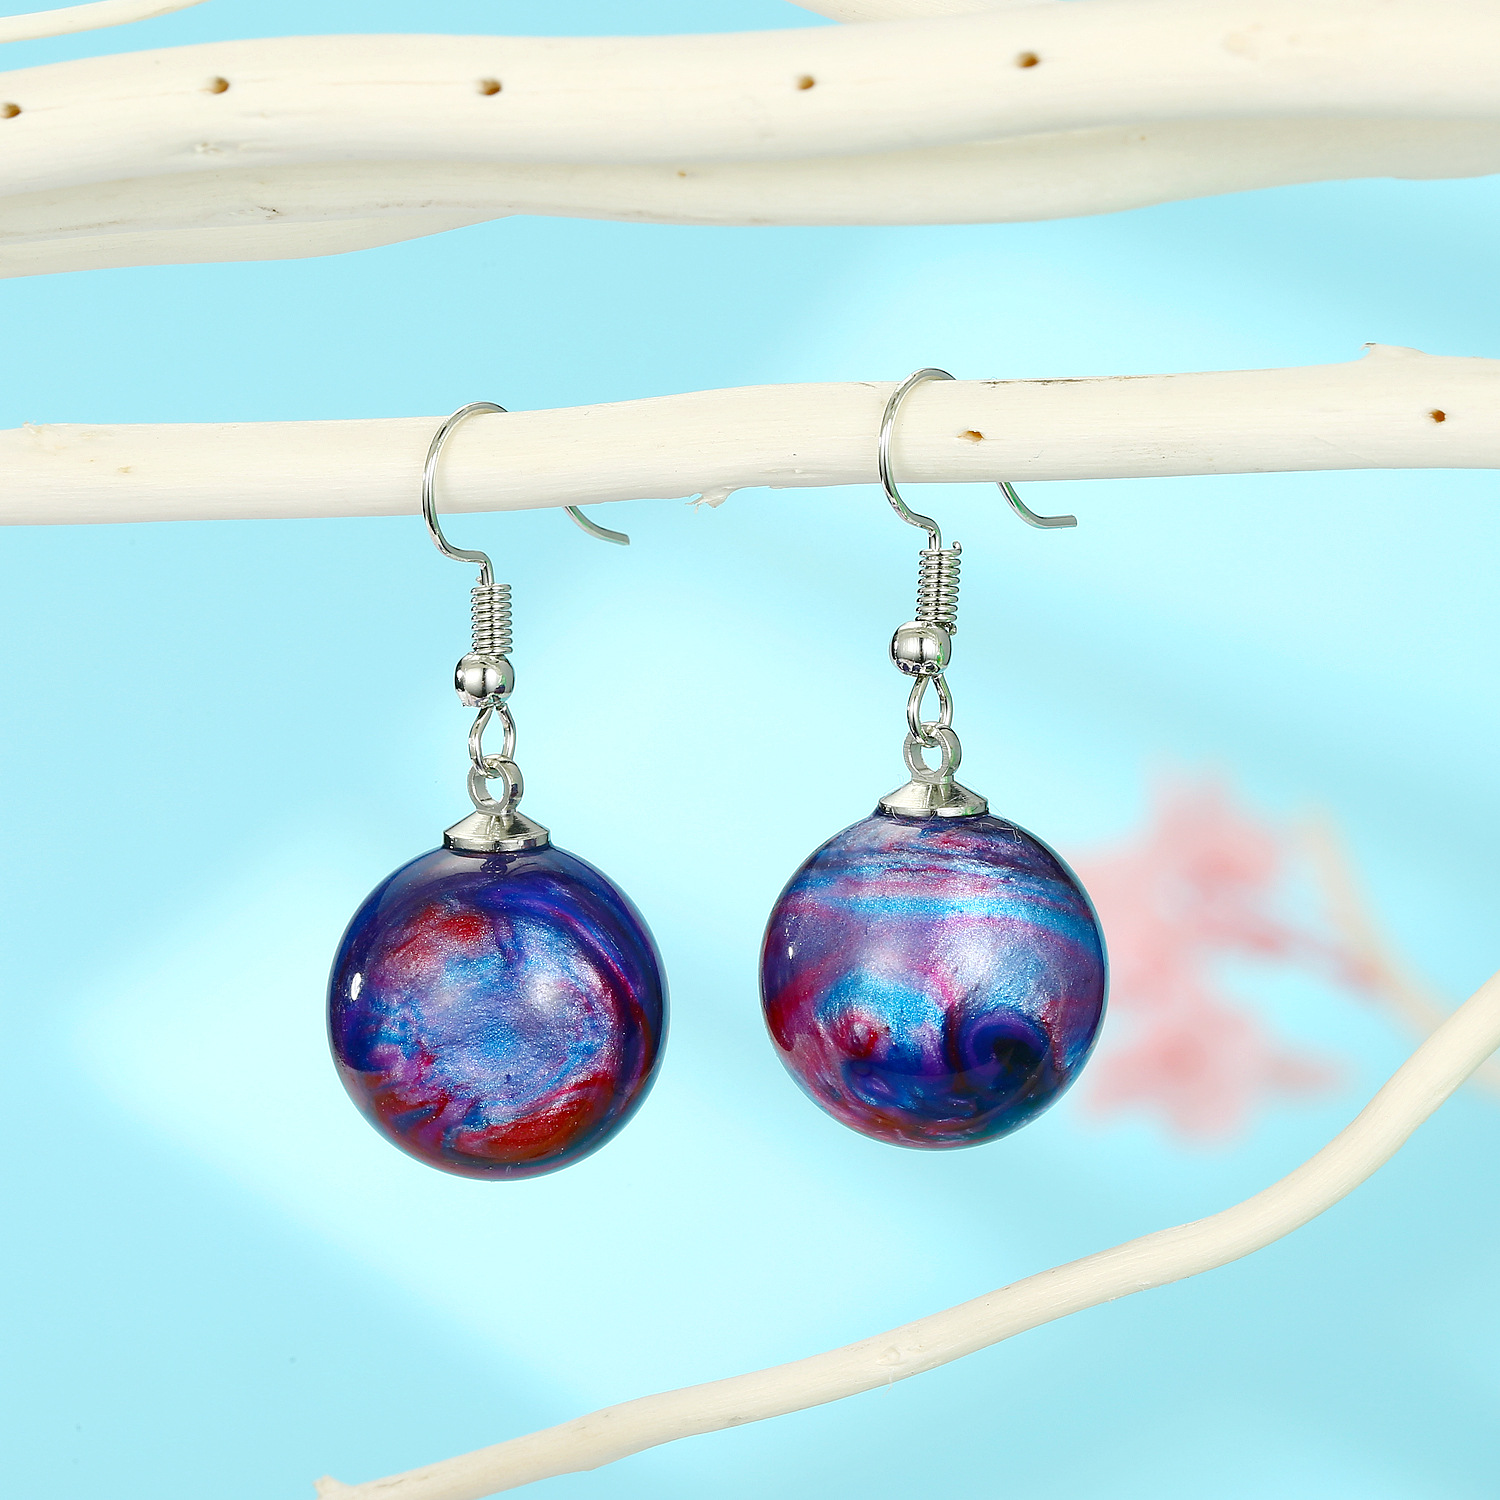 New Star Earrings Colorful Ball Earrings New Star Earrings Resin wholesales fashion NHGO201037